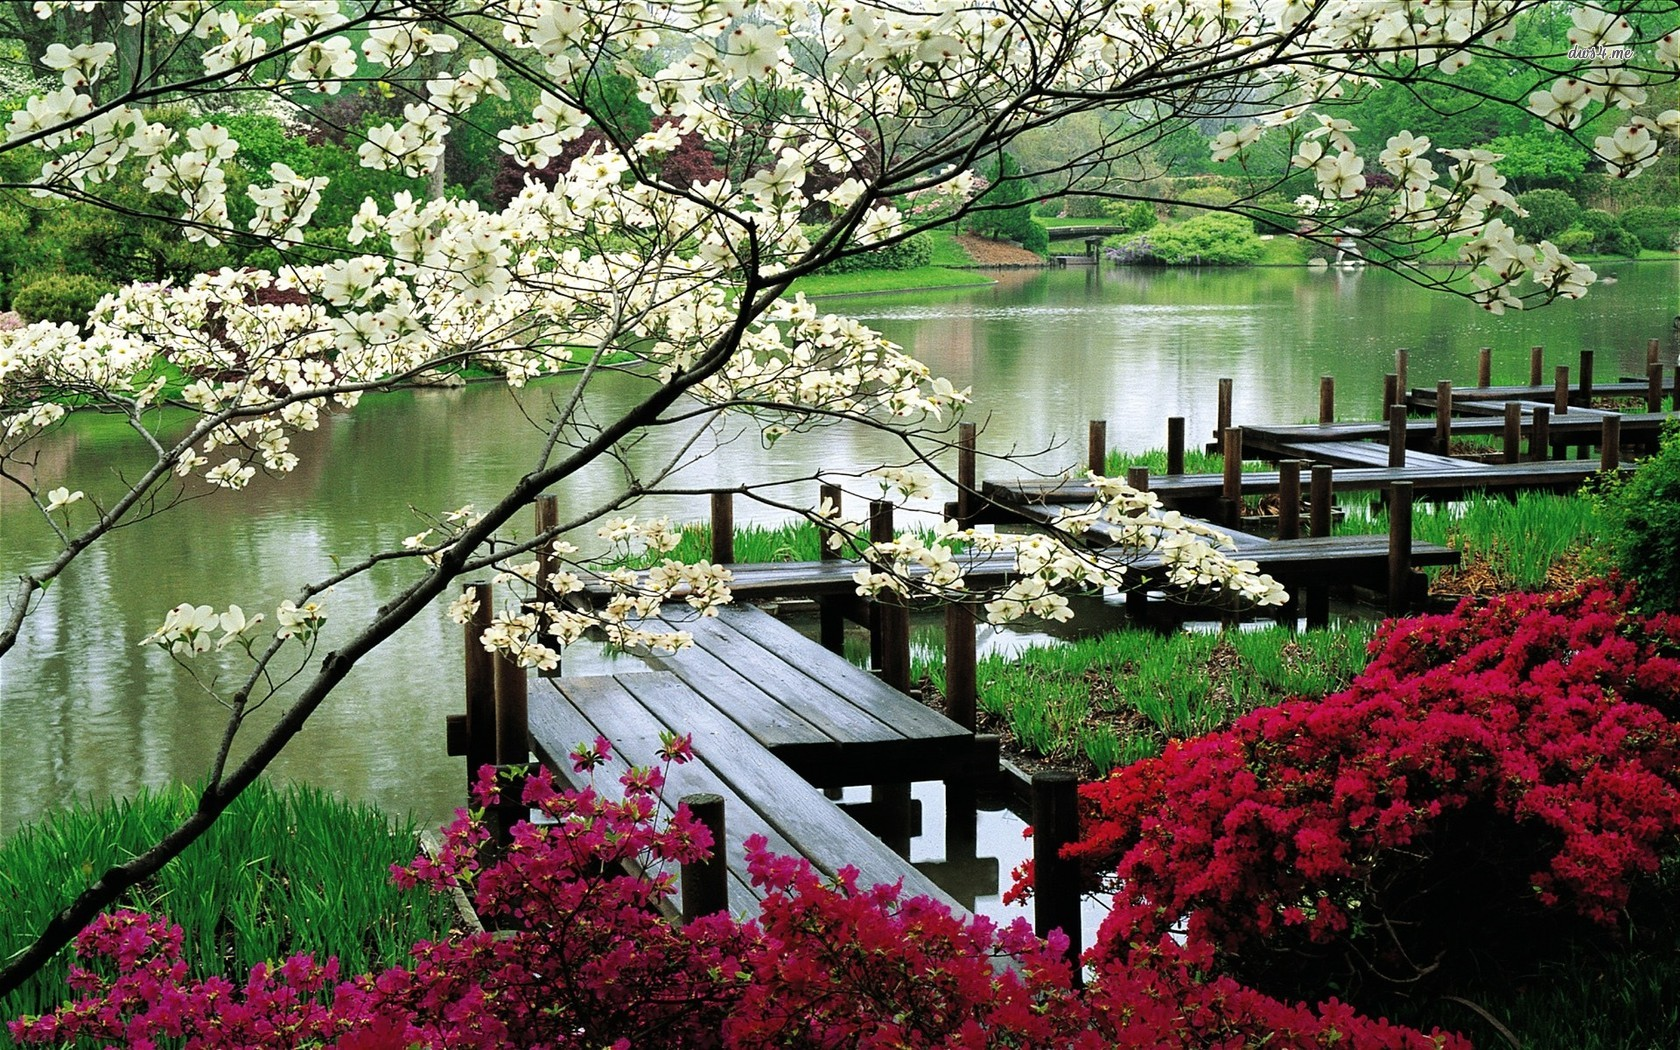 Flower Garden Wallpaper Background japanese garden desktop wallpaper - wallpapersafari